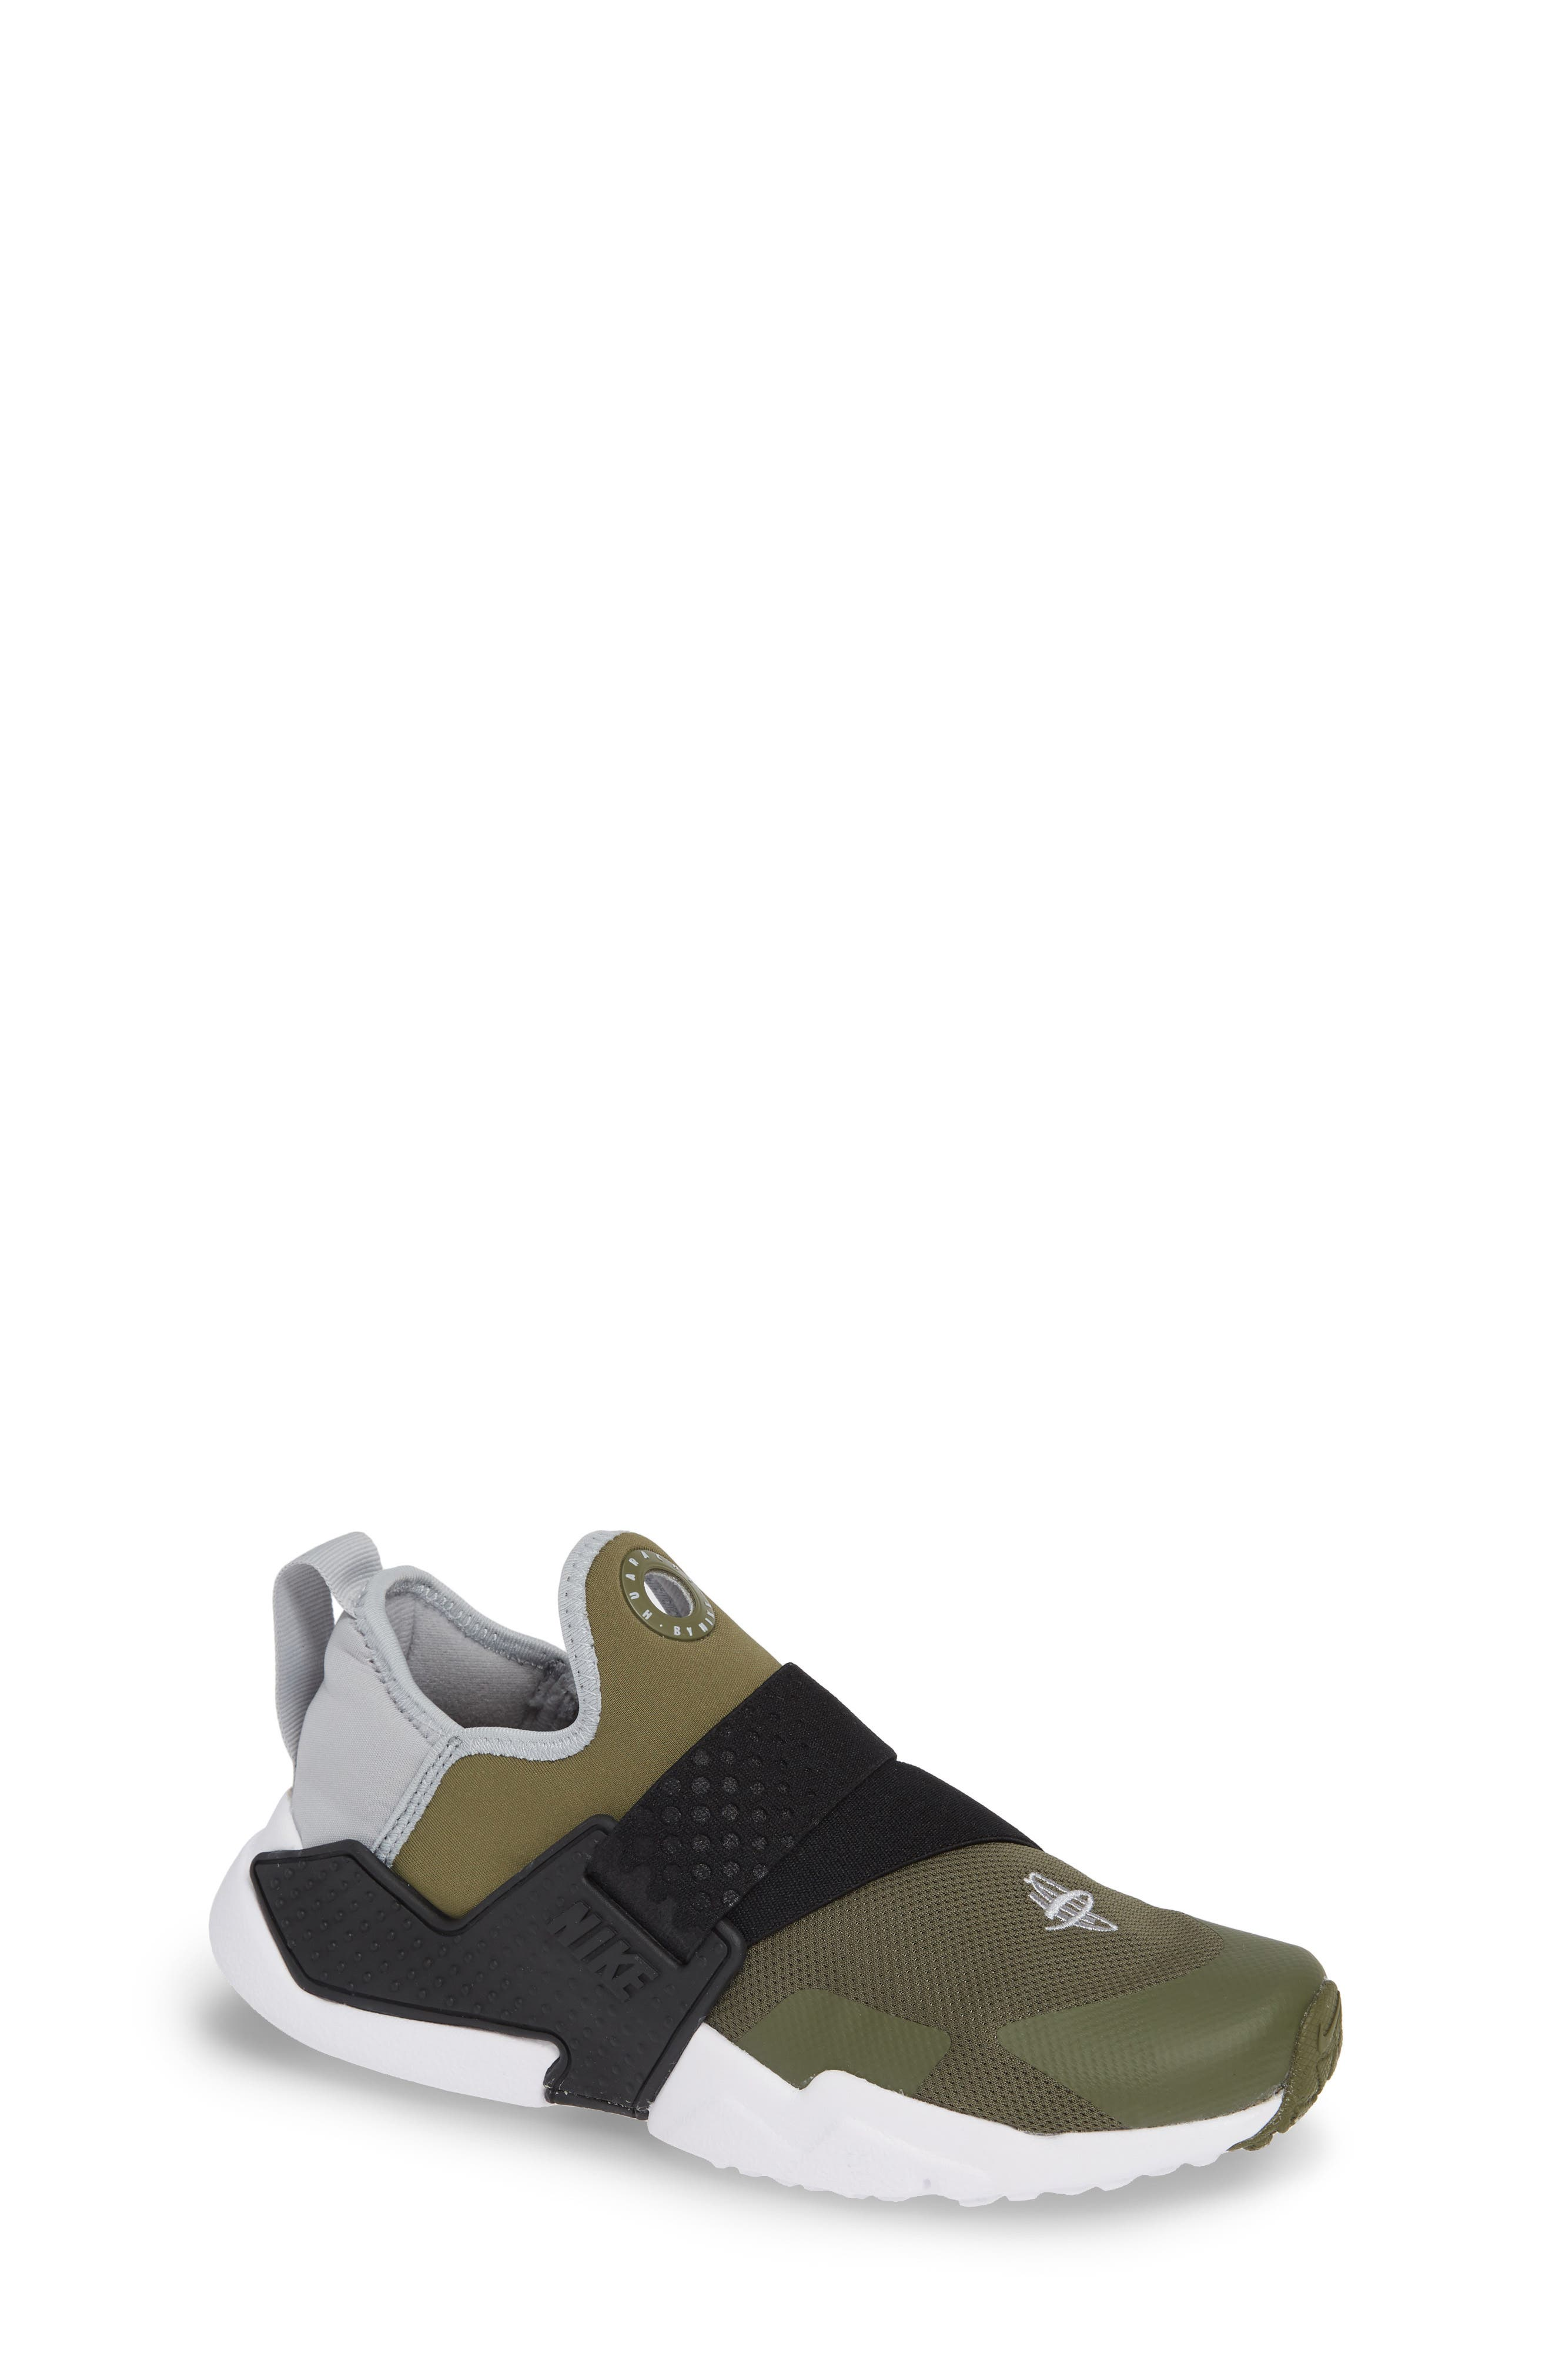 Huarache Extreme Sneaker,                             Main thumbnail 1, color,                             OLIVE/ WOLF GREY/ BLACK/ WHITE